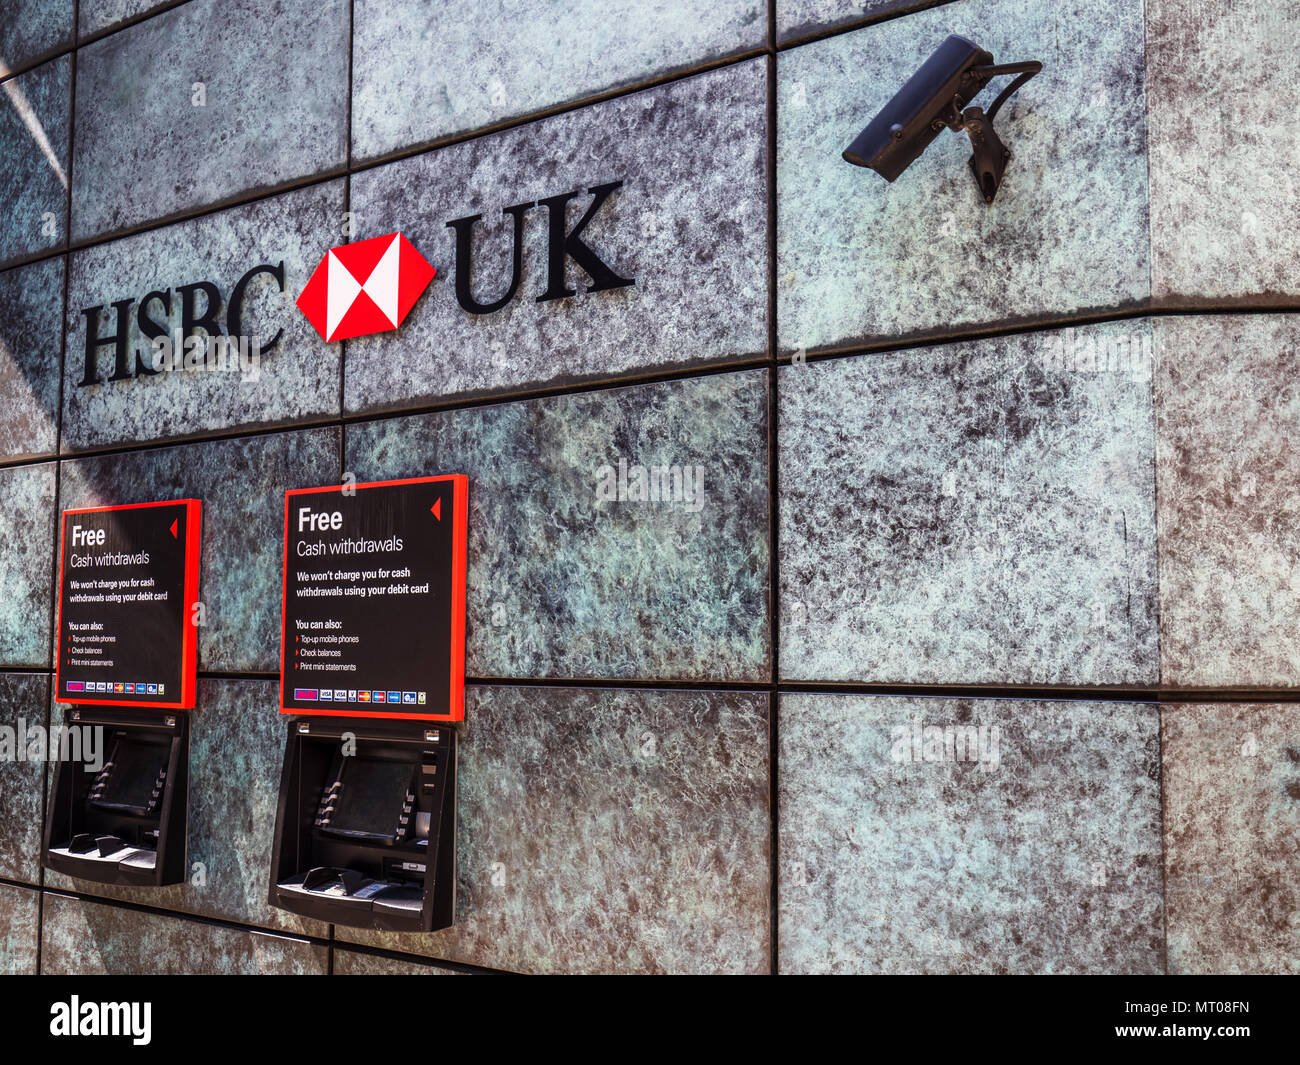 Hsbc Atms Stock Photos & Hsbc Atms Stock Images - Alamy